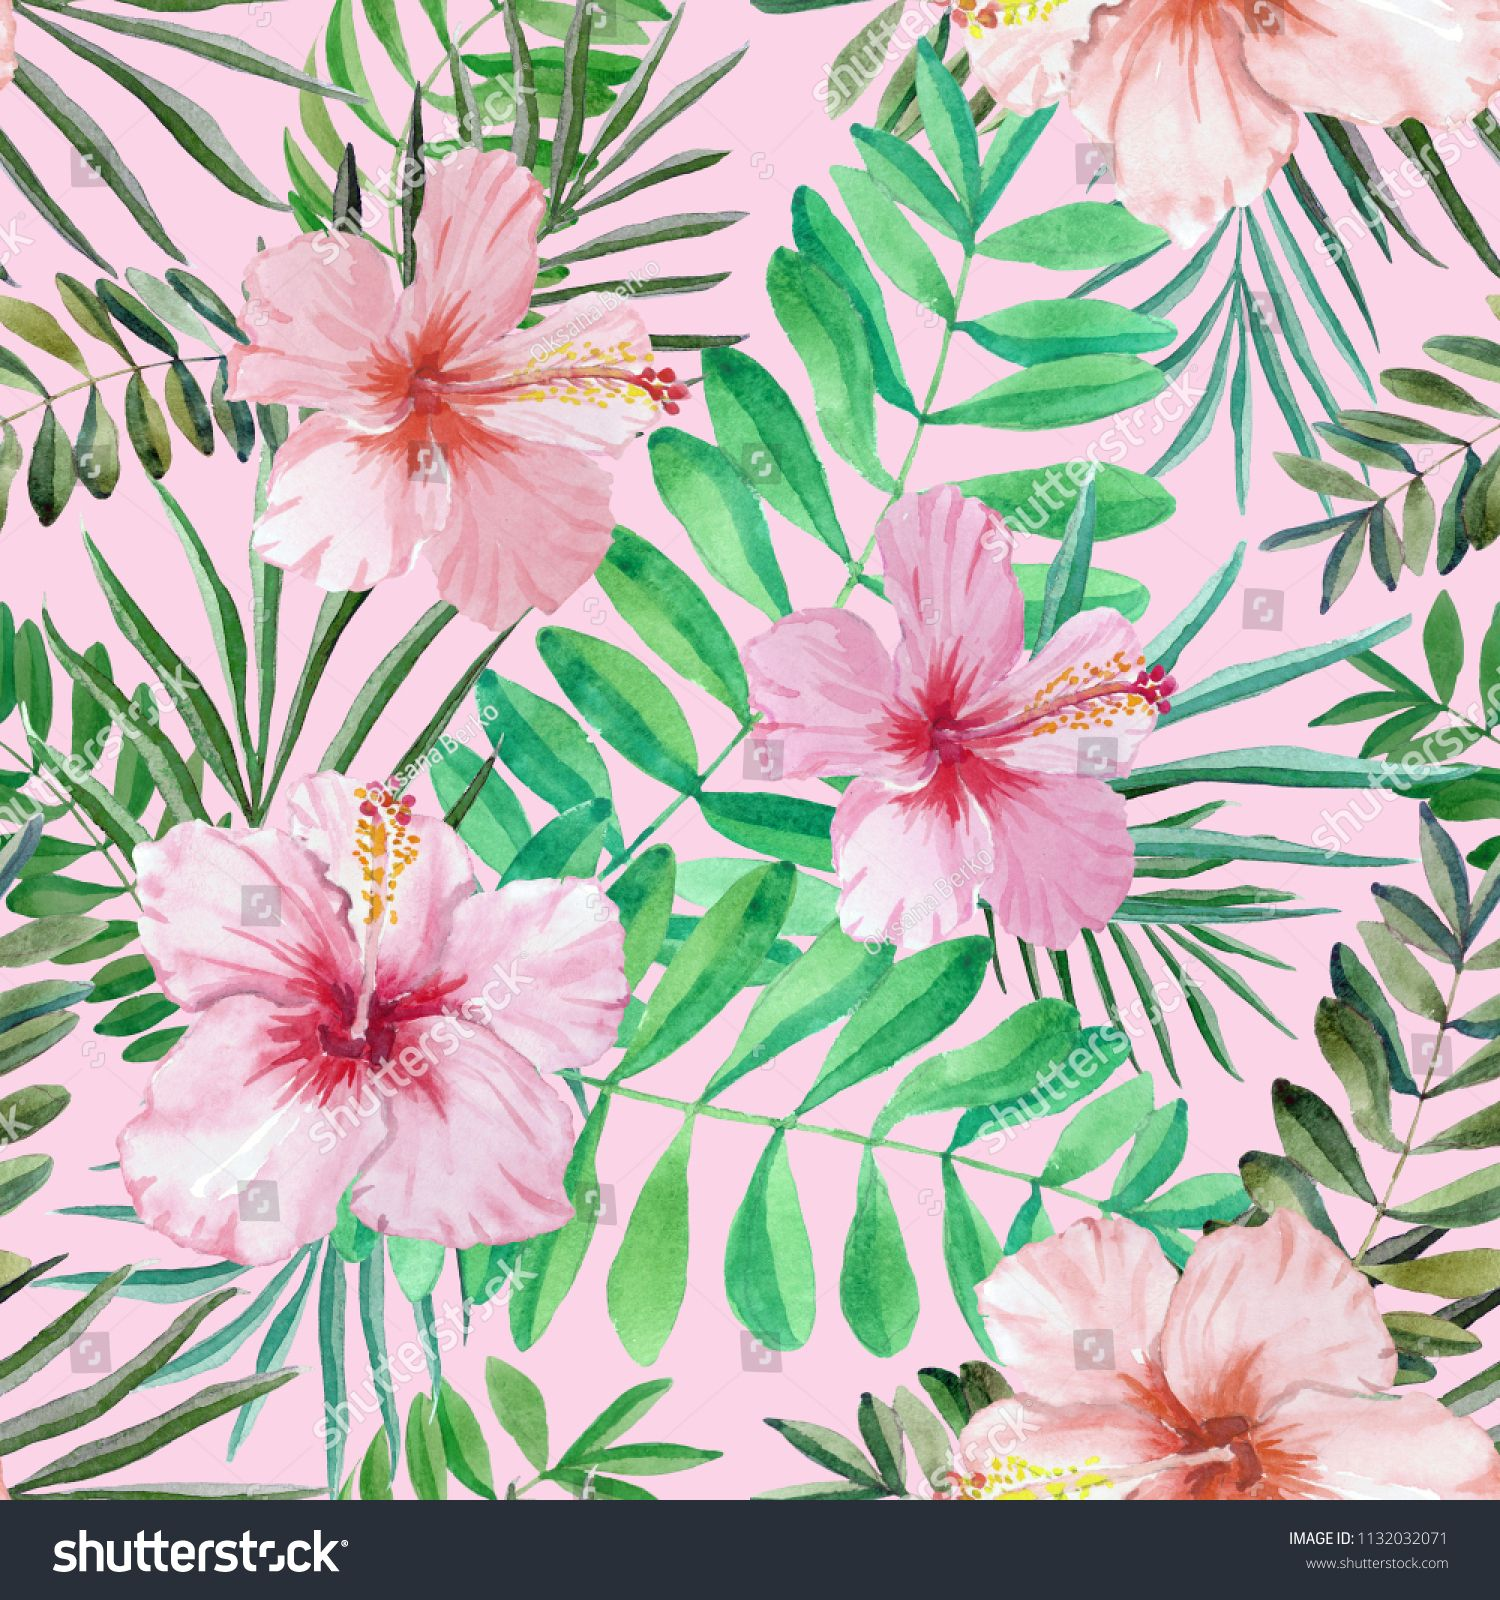 Hand Drawn Tropical Hibiscus Flowers Seamless Watercolor Pattern Botanical Background Concept For Texti Hibiscus Flowers Watercolor Pattern How To Draw Hands